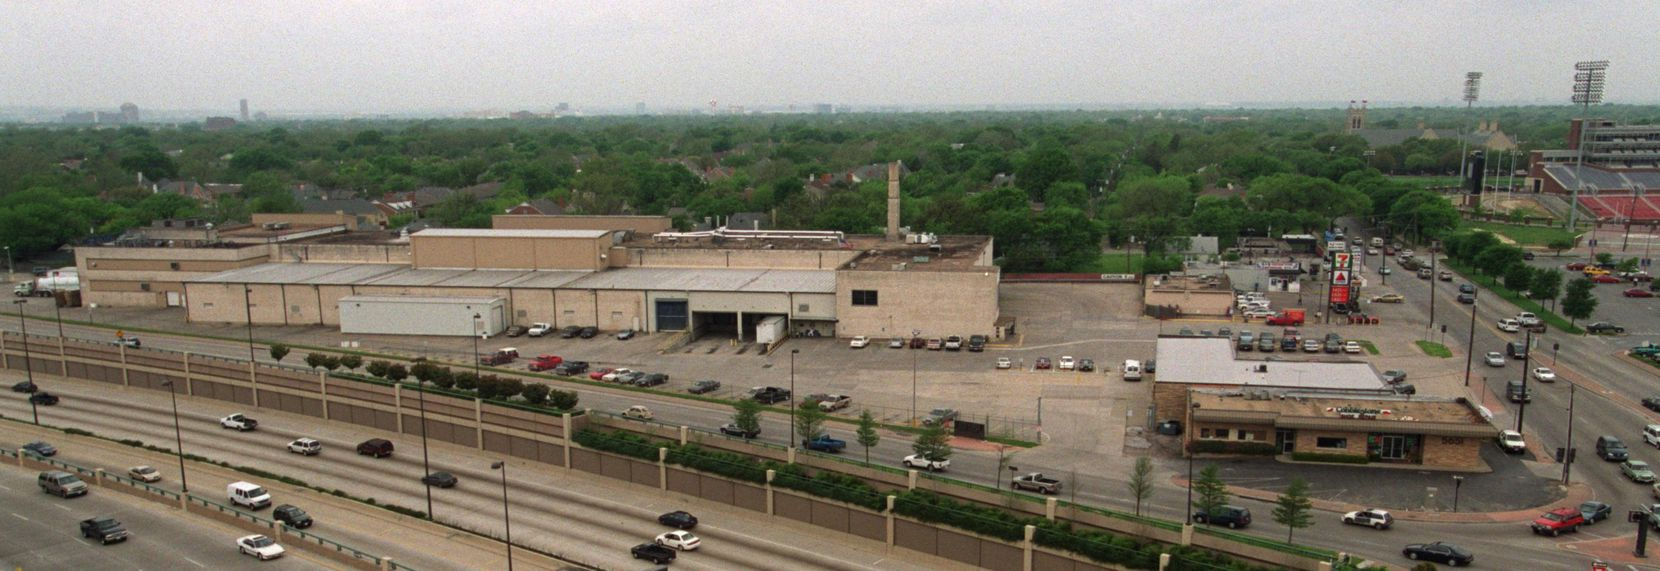 The Mrs. Baird's bread factory was at the southwest corner of Mockingbird Lane and Central Expressway. The southern end of the Southern Methodist University campus is at top right.